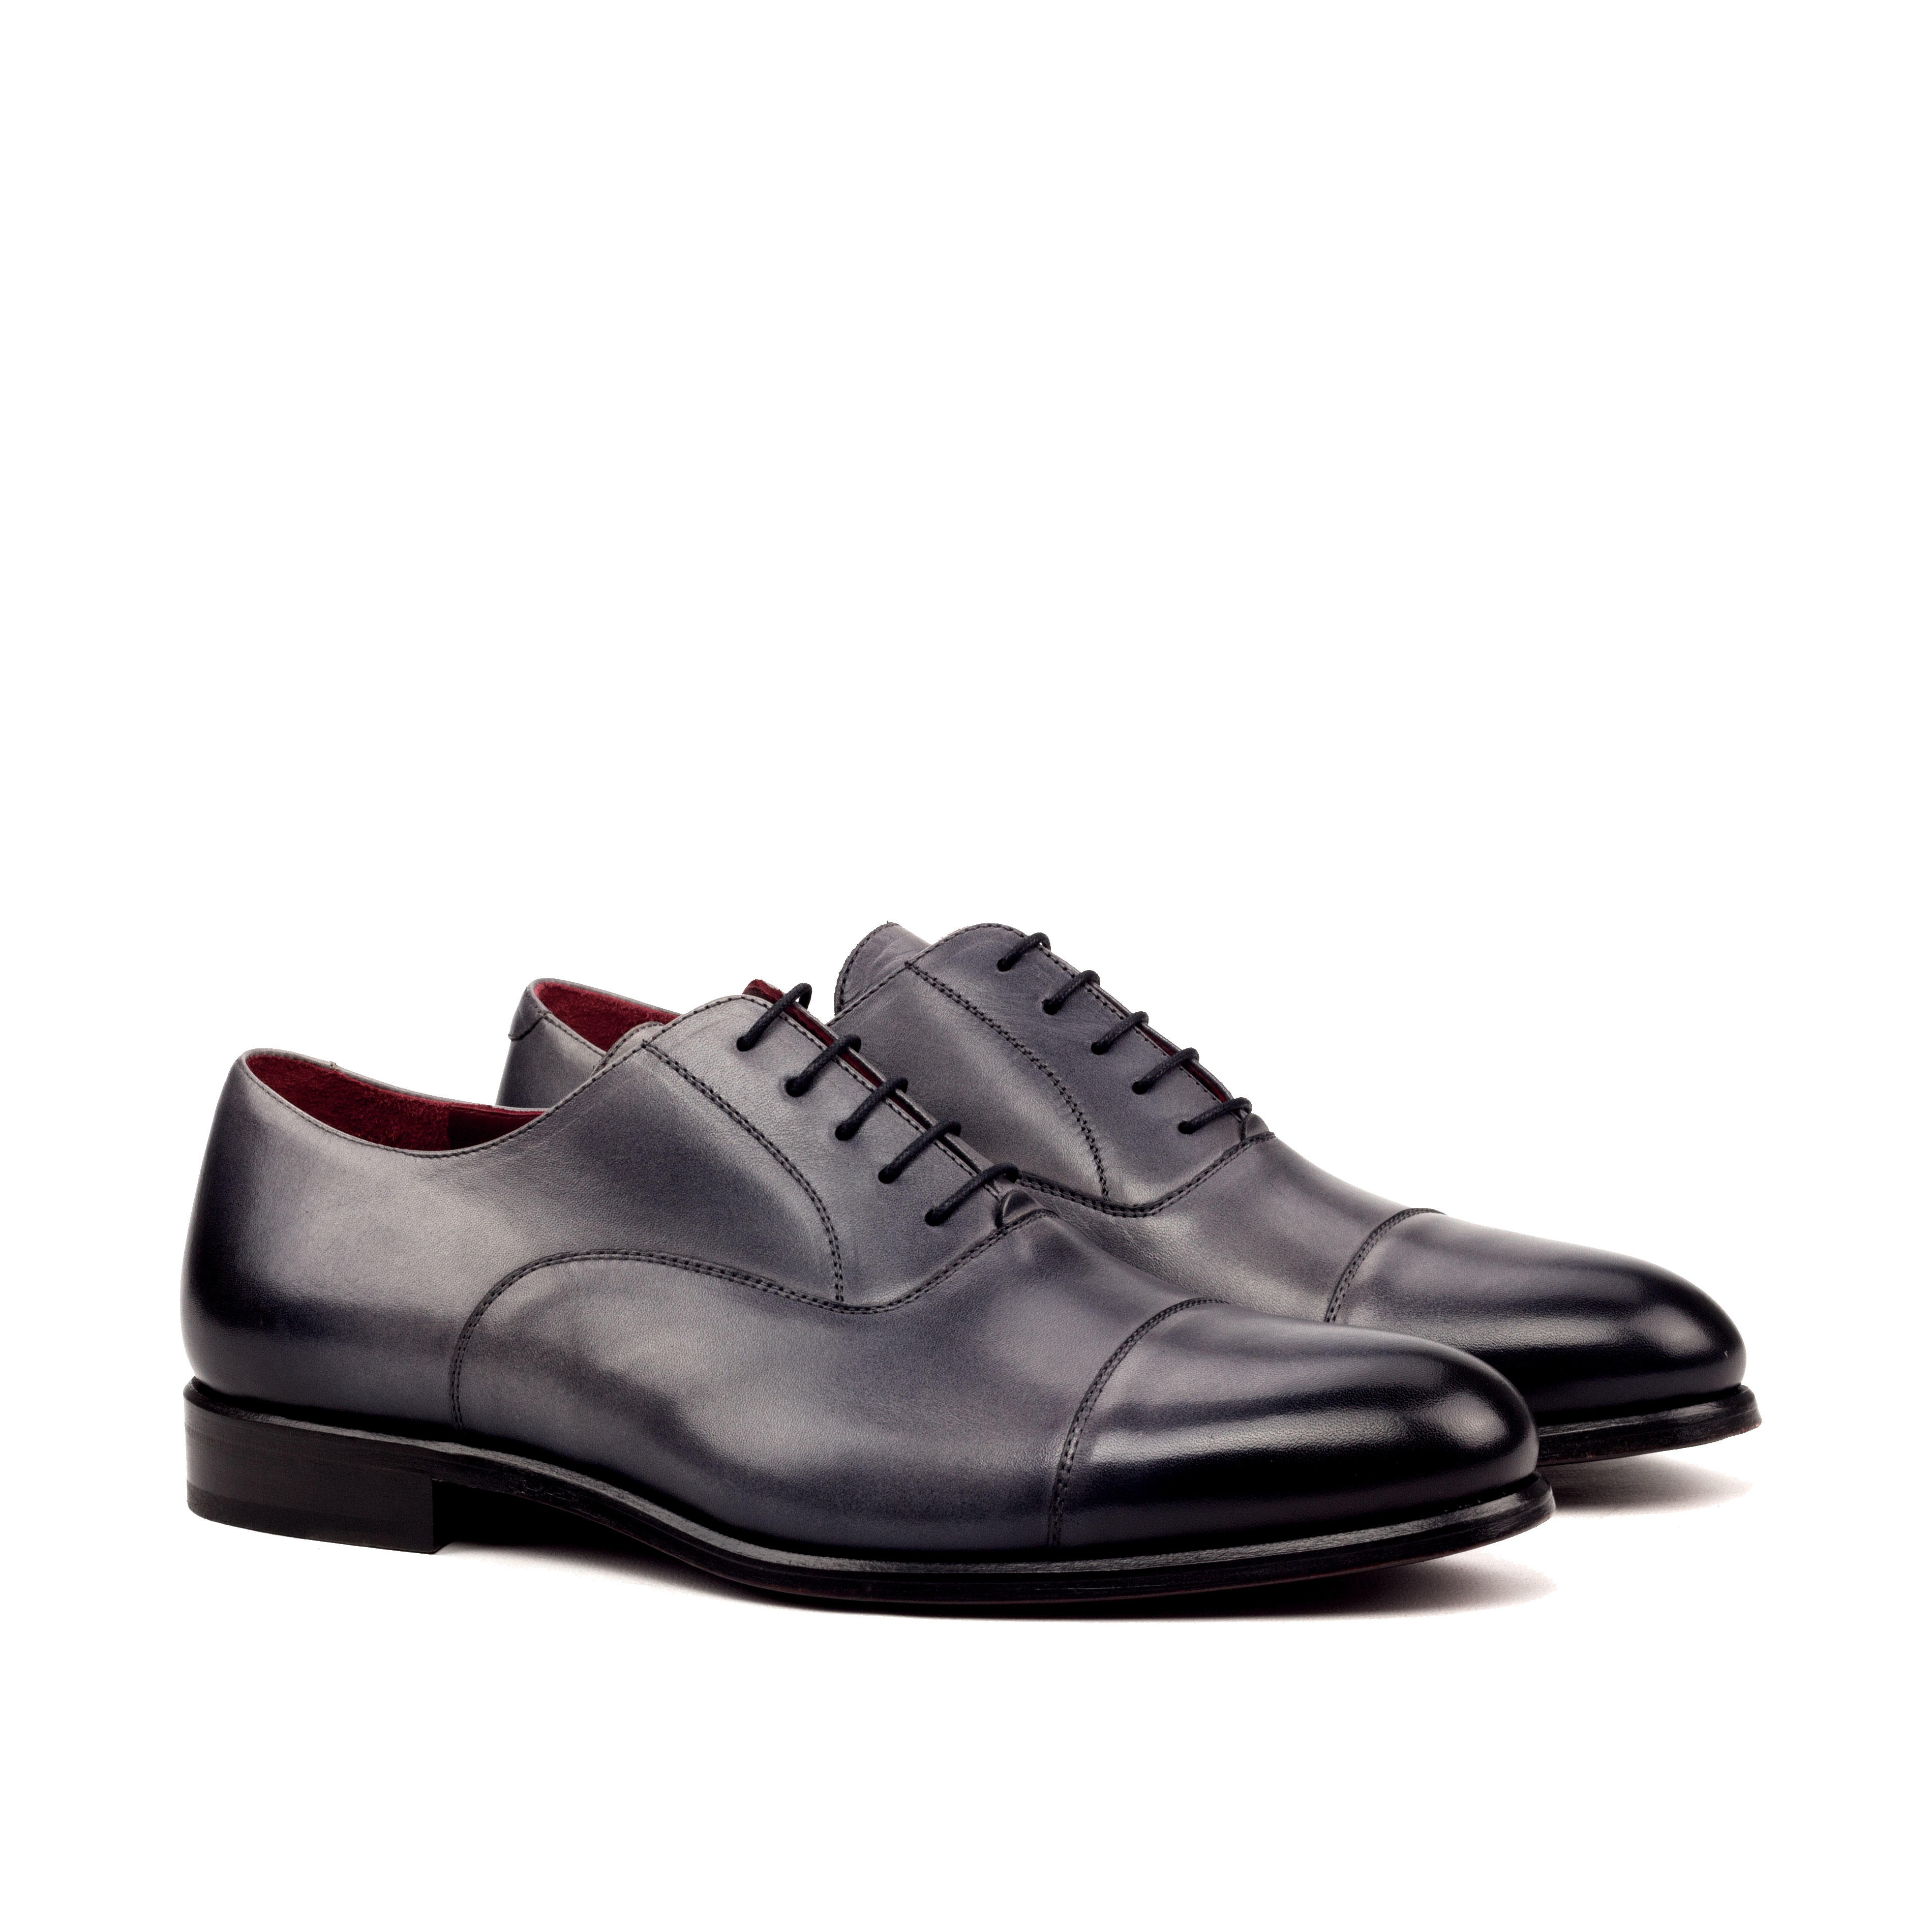 MANOR OF LONDON ''The Oxford' Burnished Grey Painted Calfskin Shoe Luxury Custom Initials Monogrammed Front Side View